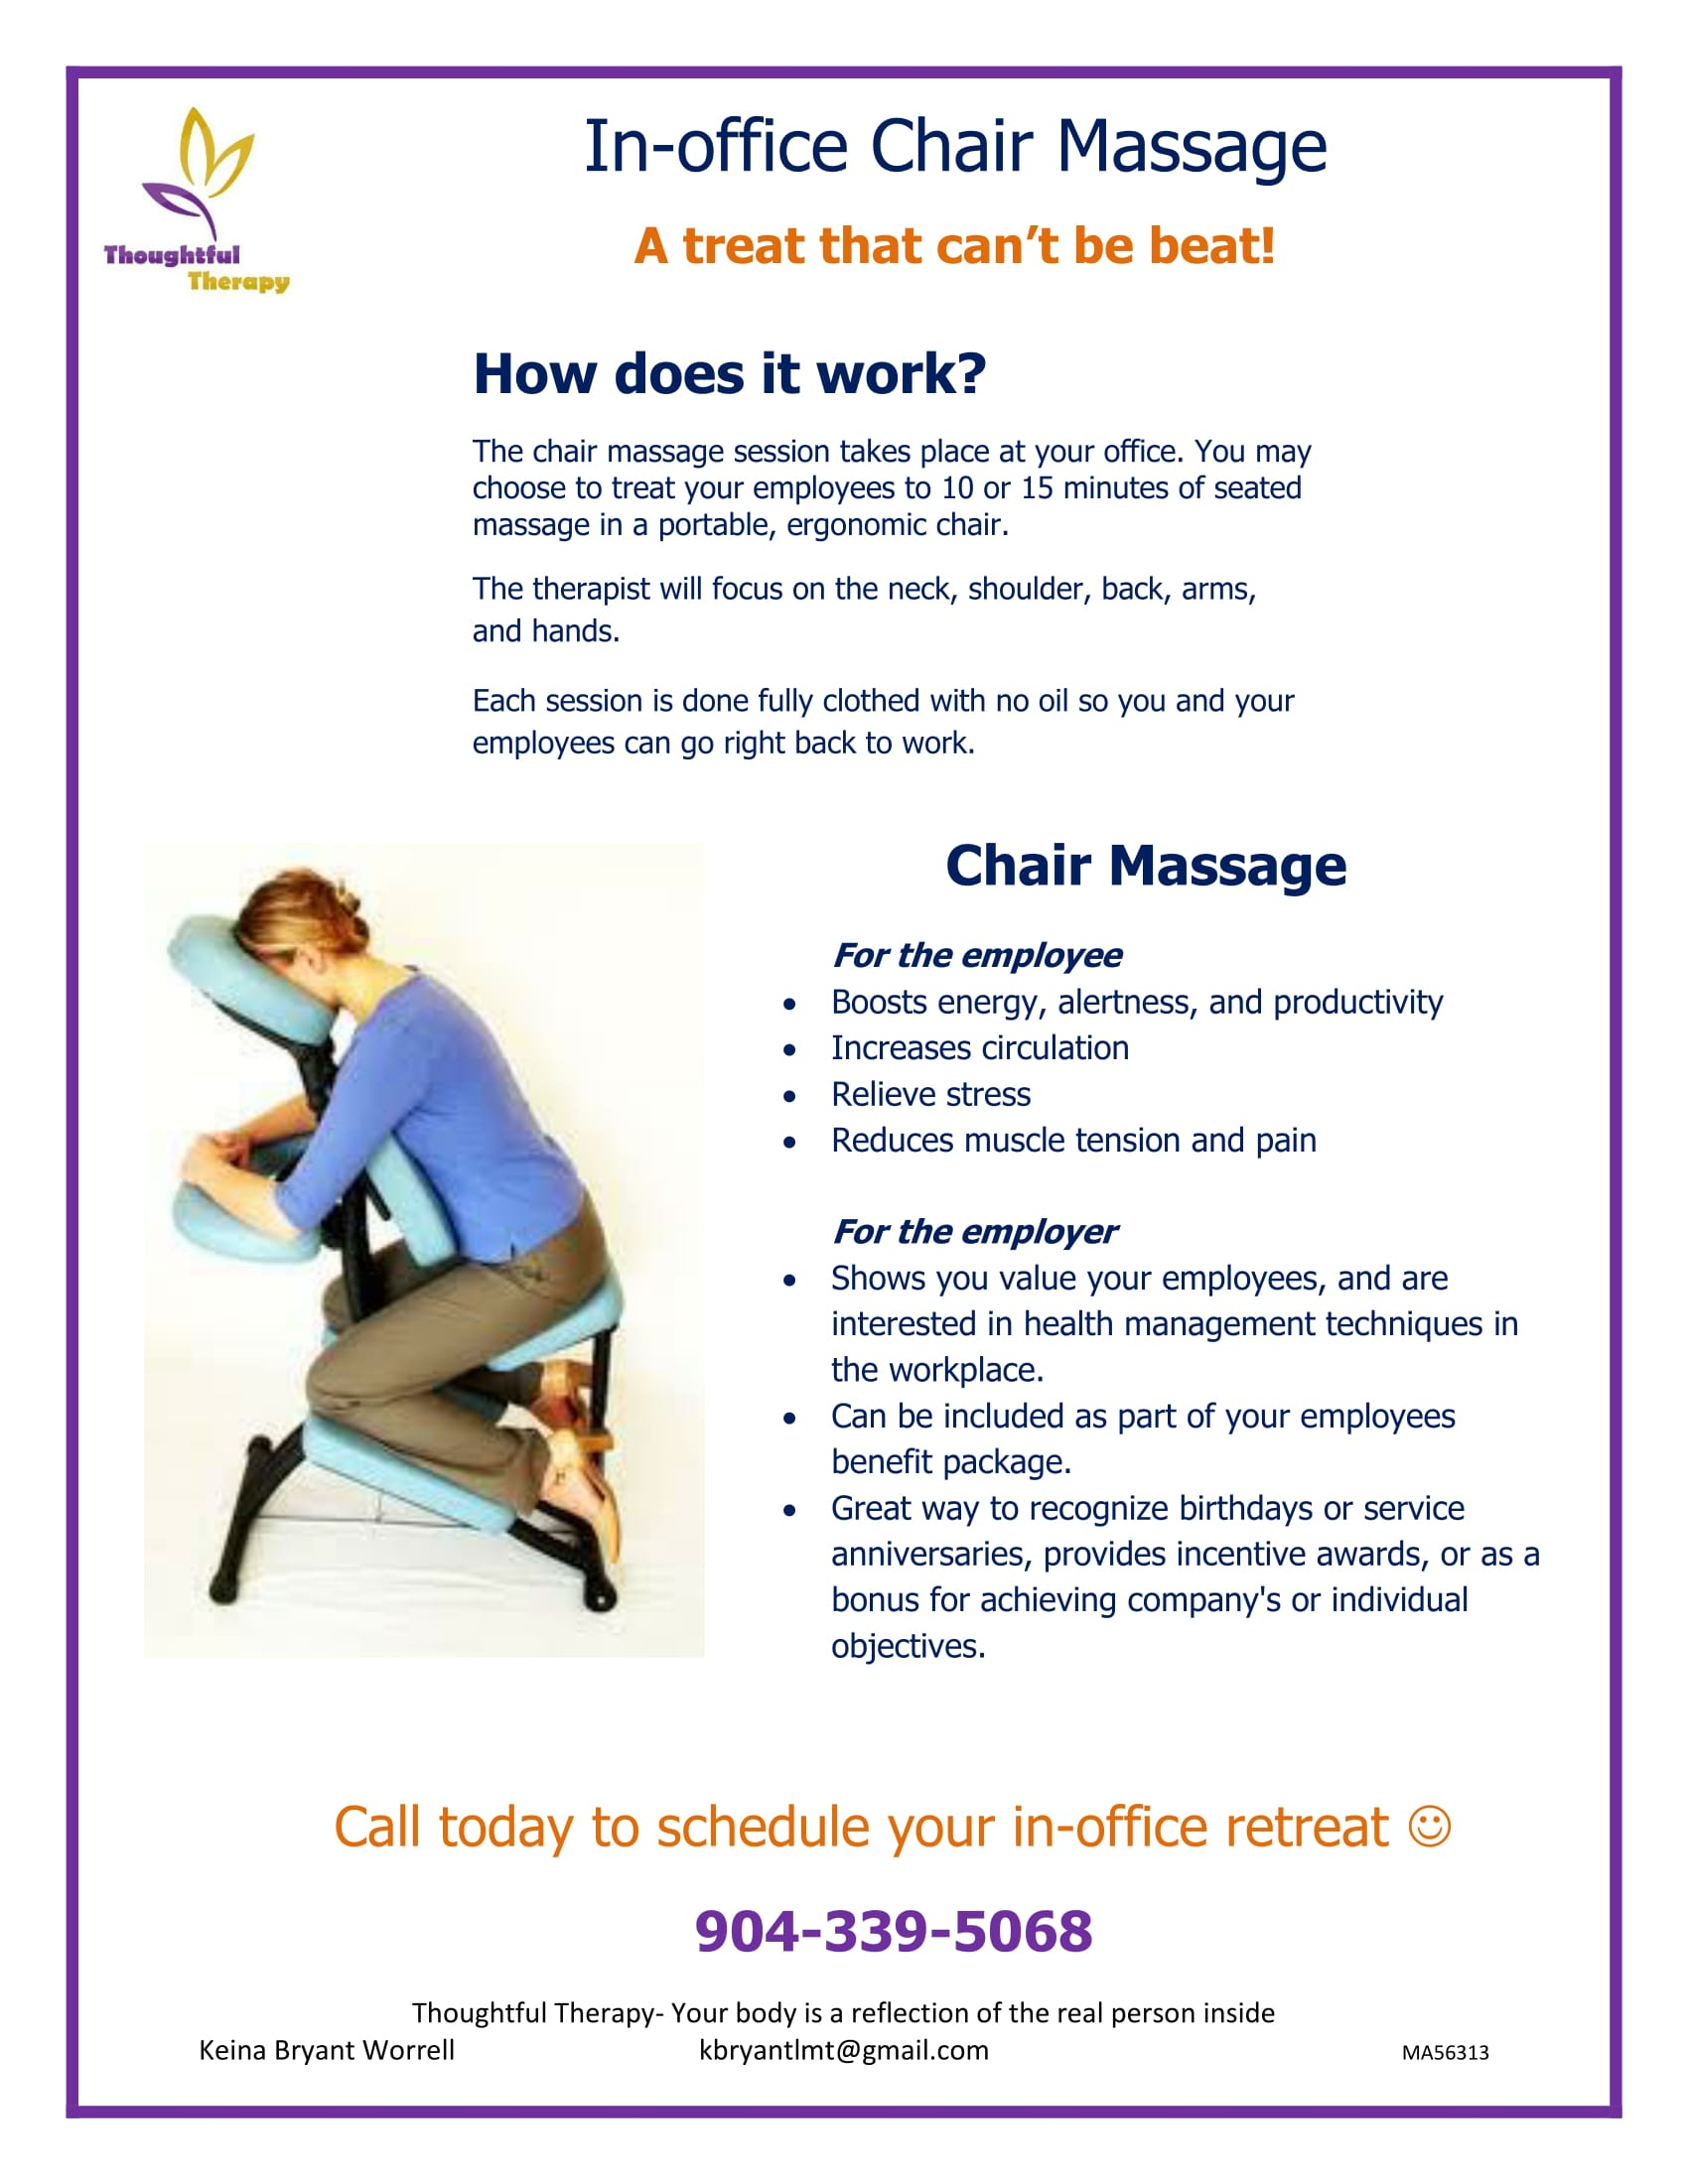 Massage Therapist Chair In Office Chair Massage Thoughtful Therapy